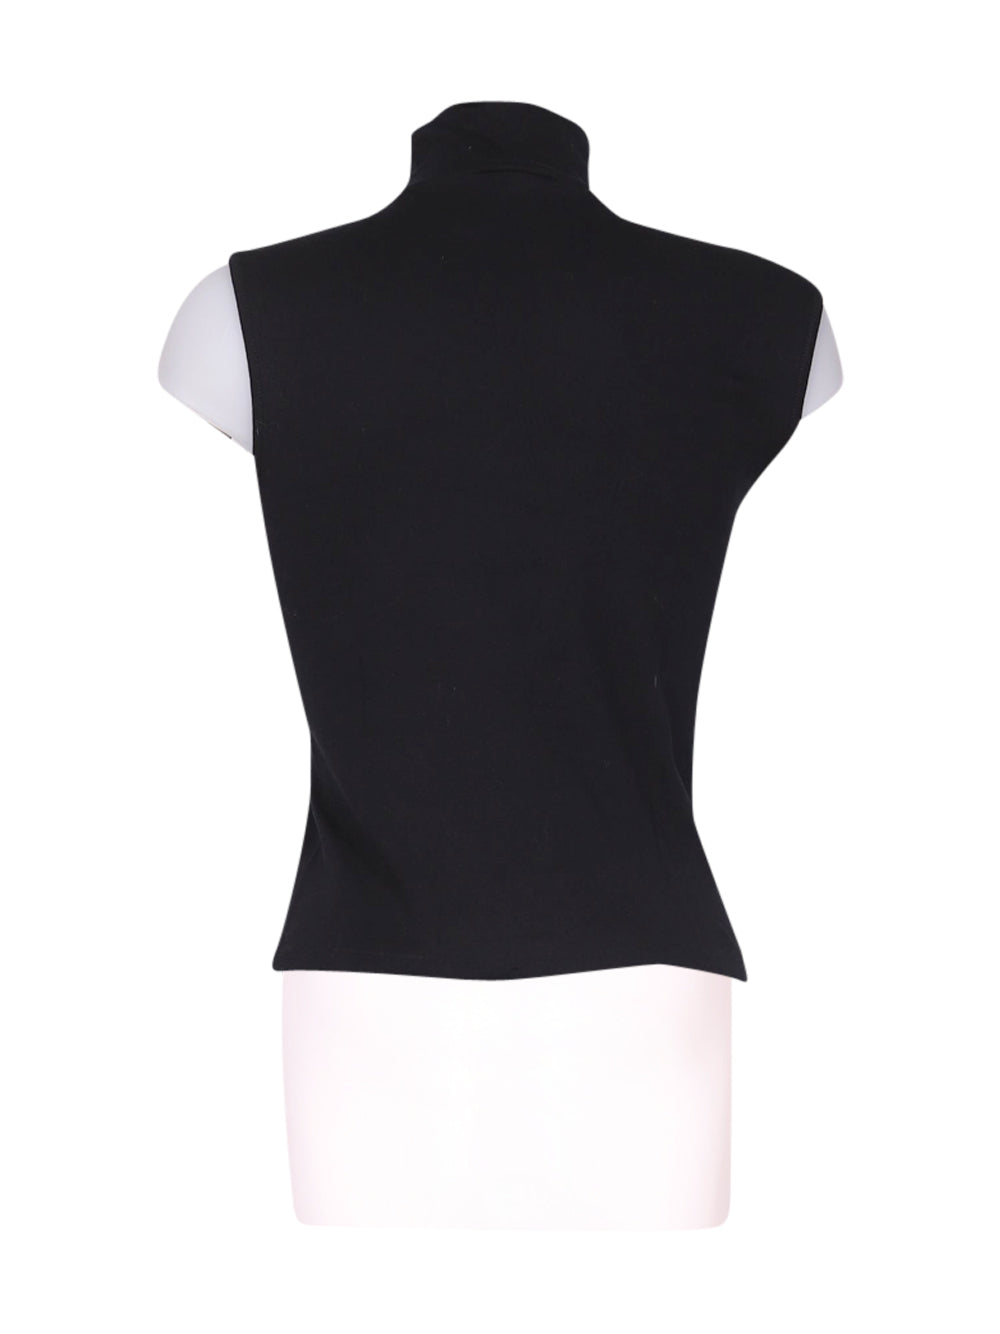 Back photo of Preloved Ragno Black Woman's sleeveless top - size 8/S